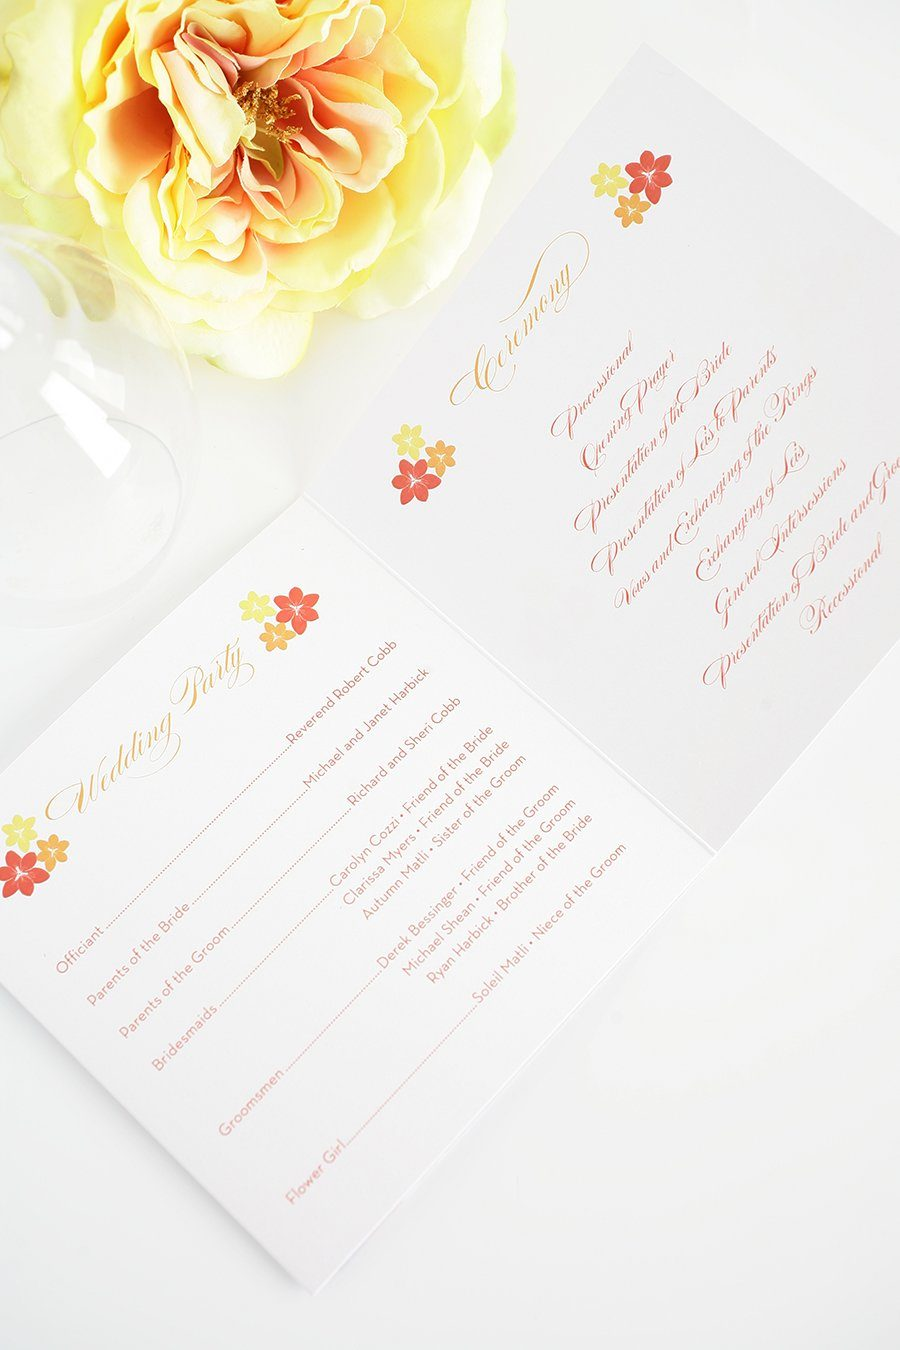 Red, yellow and orange wedding programs